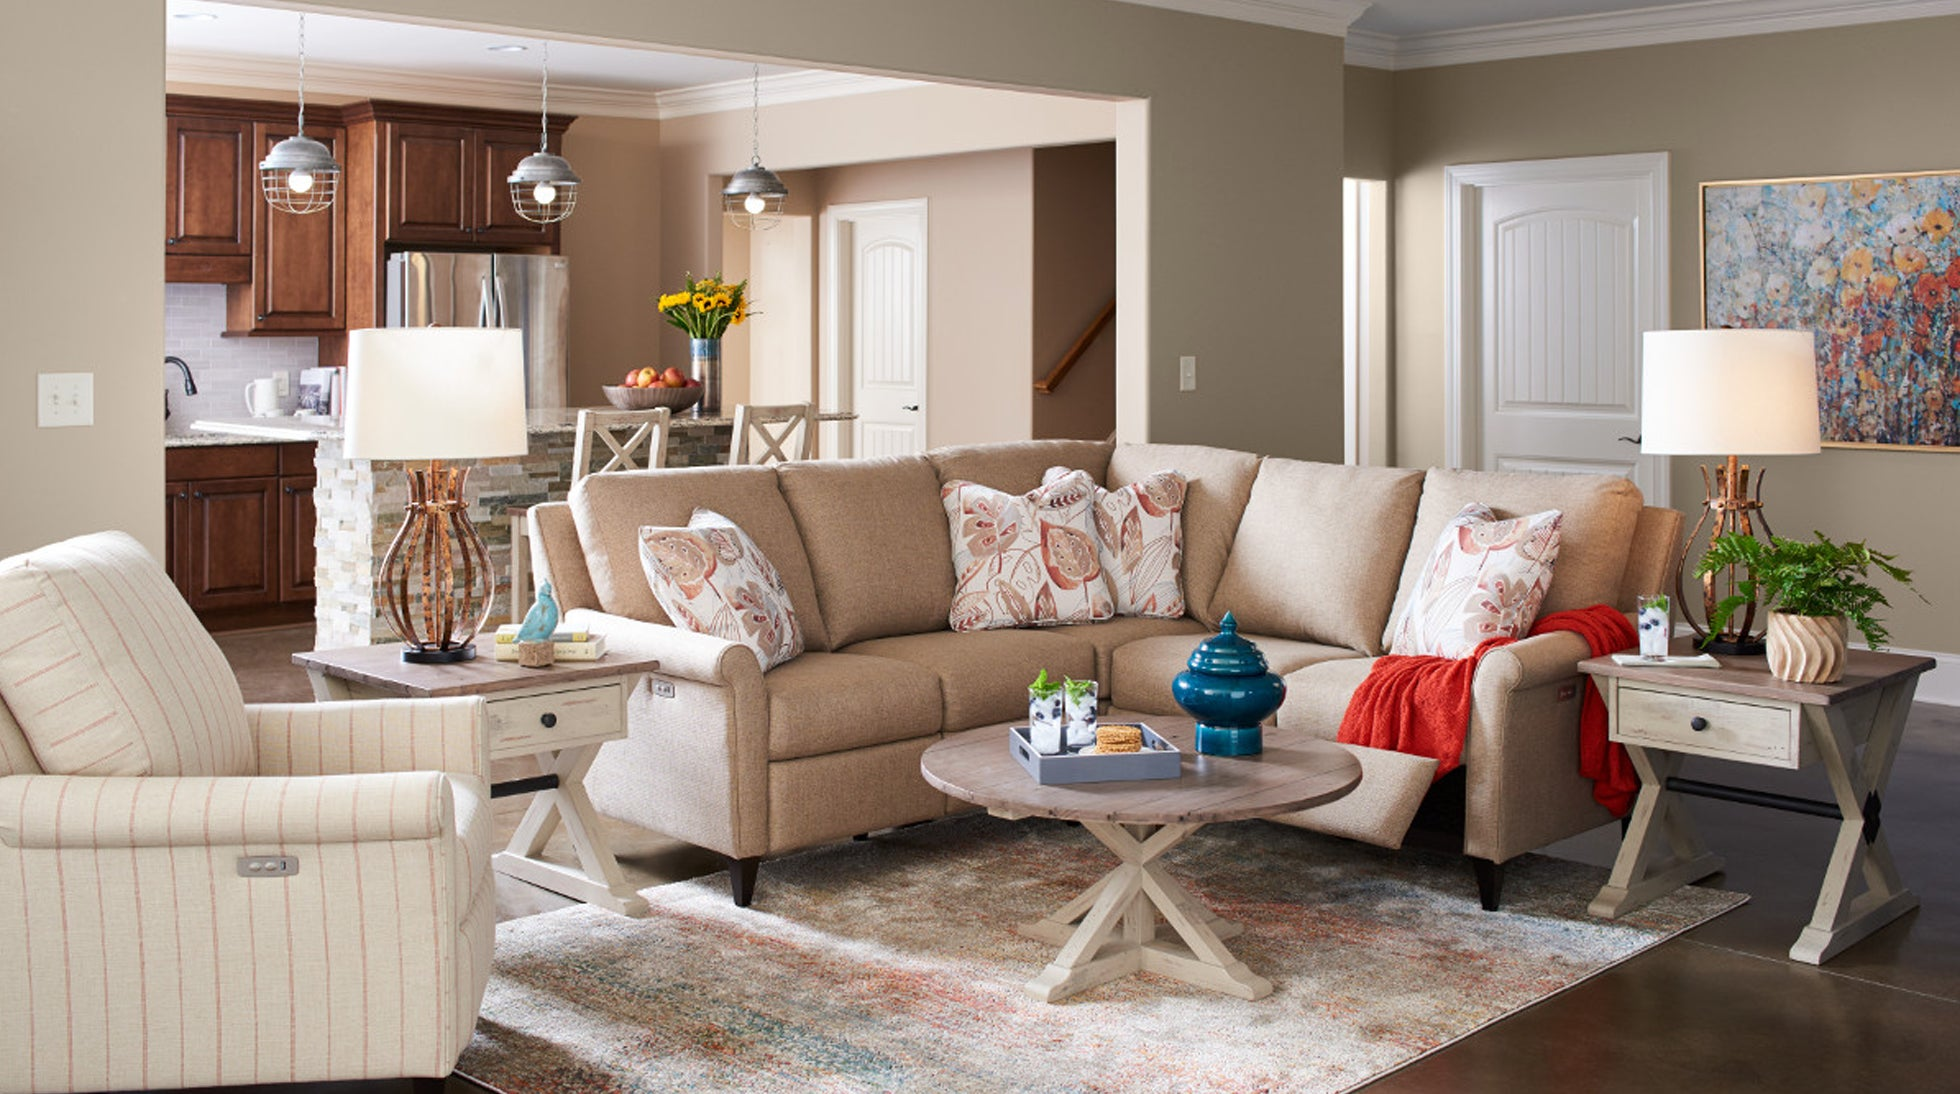 Abby duo® Sectional room scene